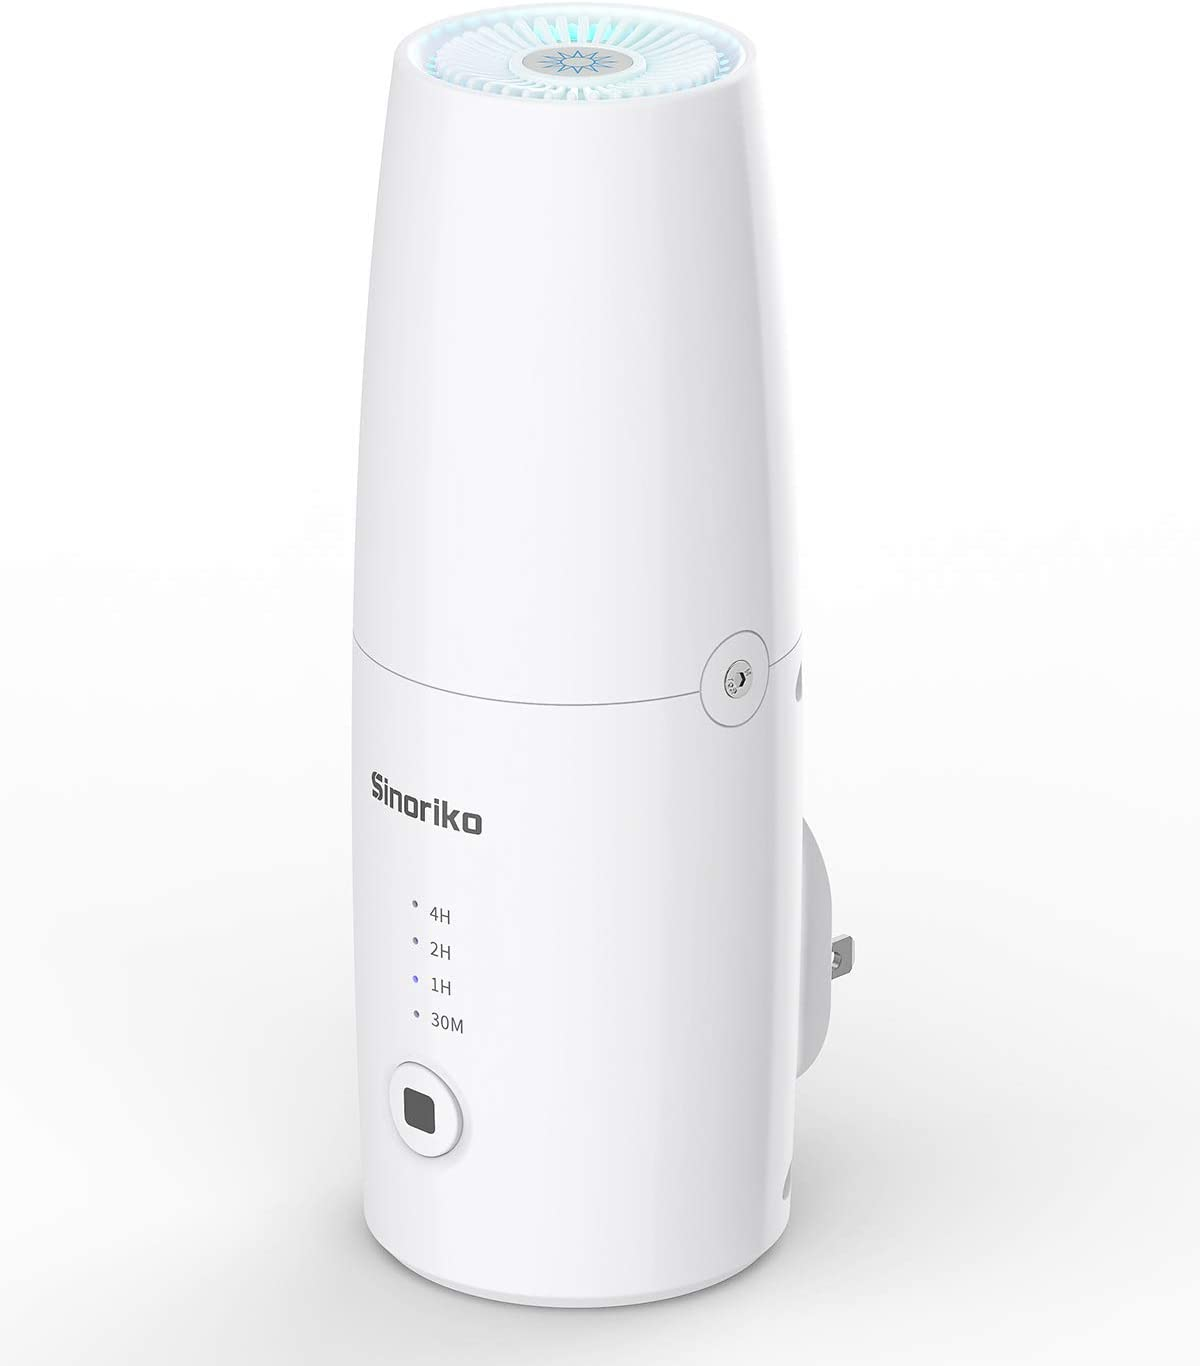 SINORIKO Pluggable Air Purifier & Sanitizer, Eliminates Germs and Viruses, Bacteria with UV-C Light and Ozone, Keep Air Fresh and Reduces Odors from Pet Area, Smoke, Mold, Cooking, Laundry, Rooms